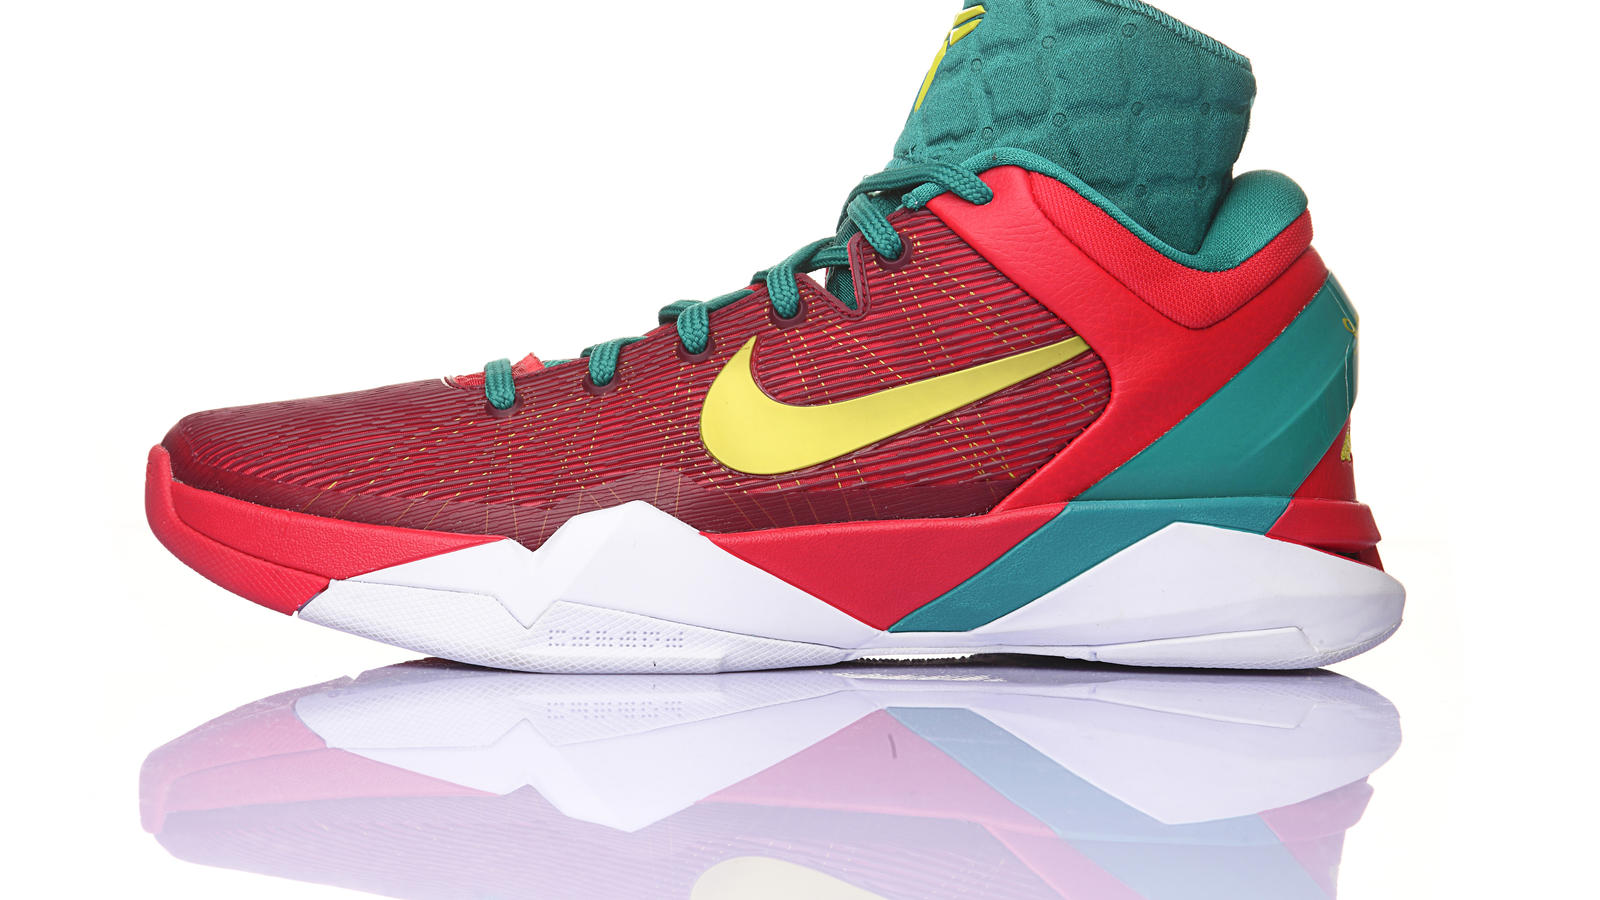 Nike introduces 'Year of the Dragon